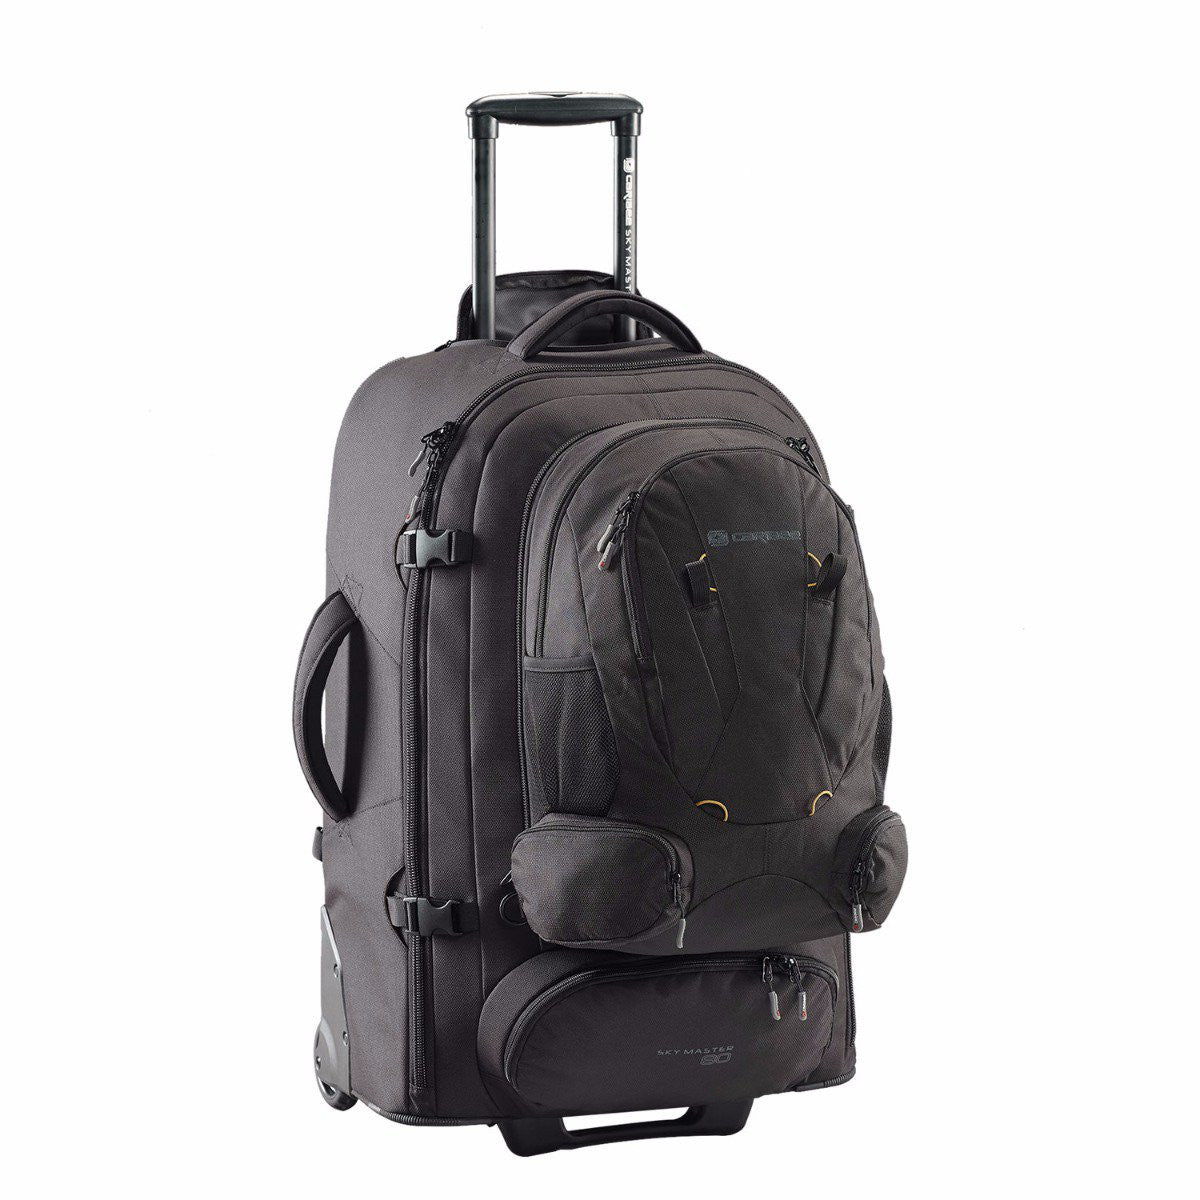 Caribee Sky Master 80 2 Wheeled Backpack Travelpack